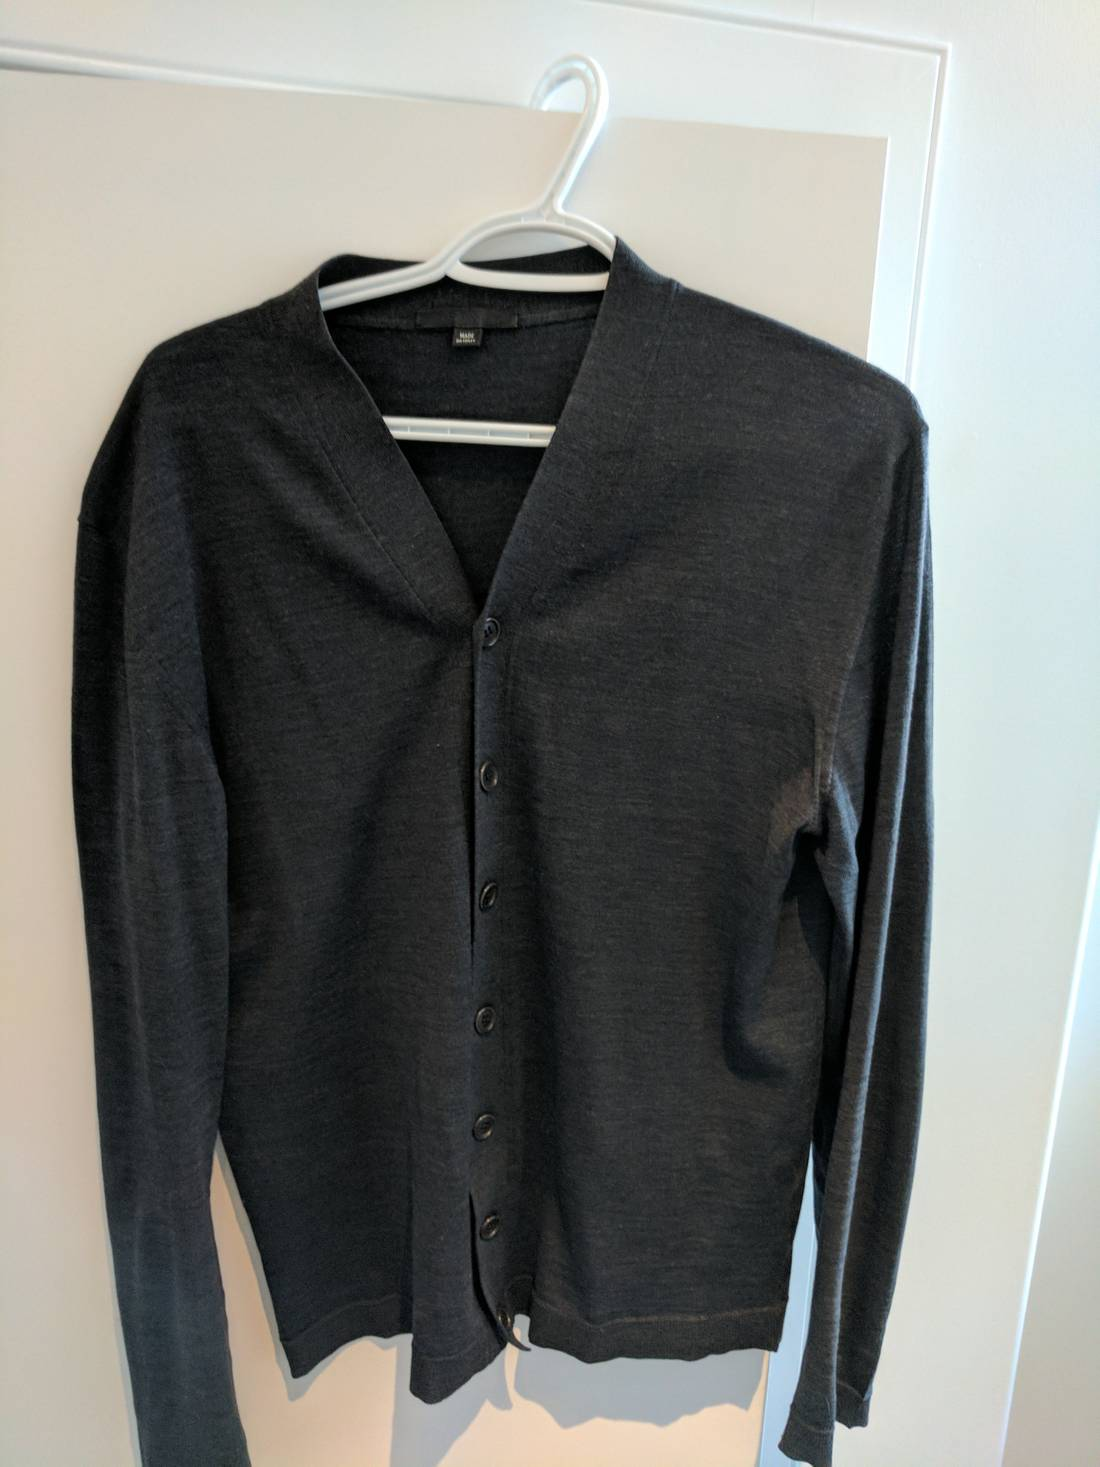 Helmut Lang Helmut Lang Cardigan Size m - Sweaters & Knitwear for ...